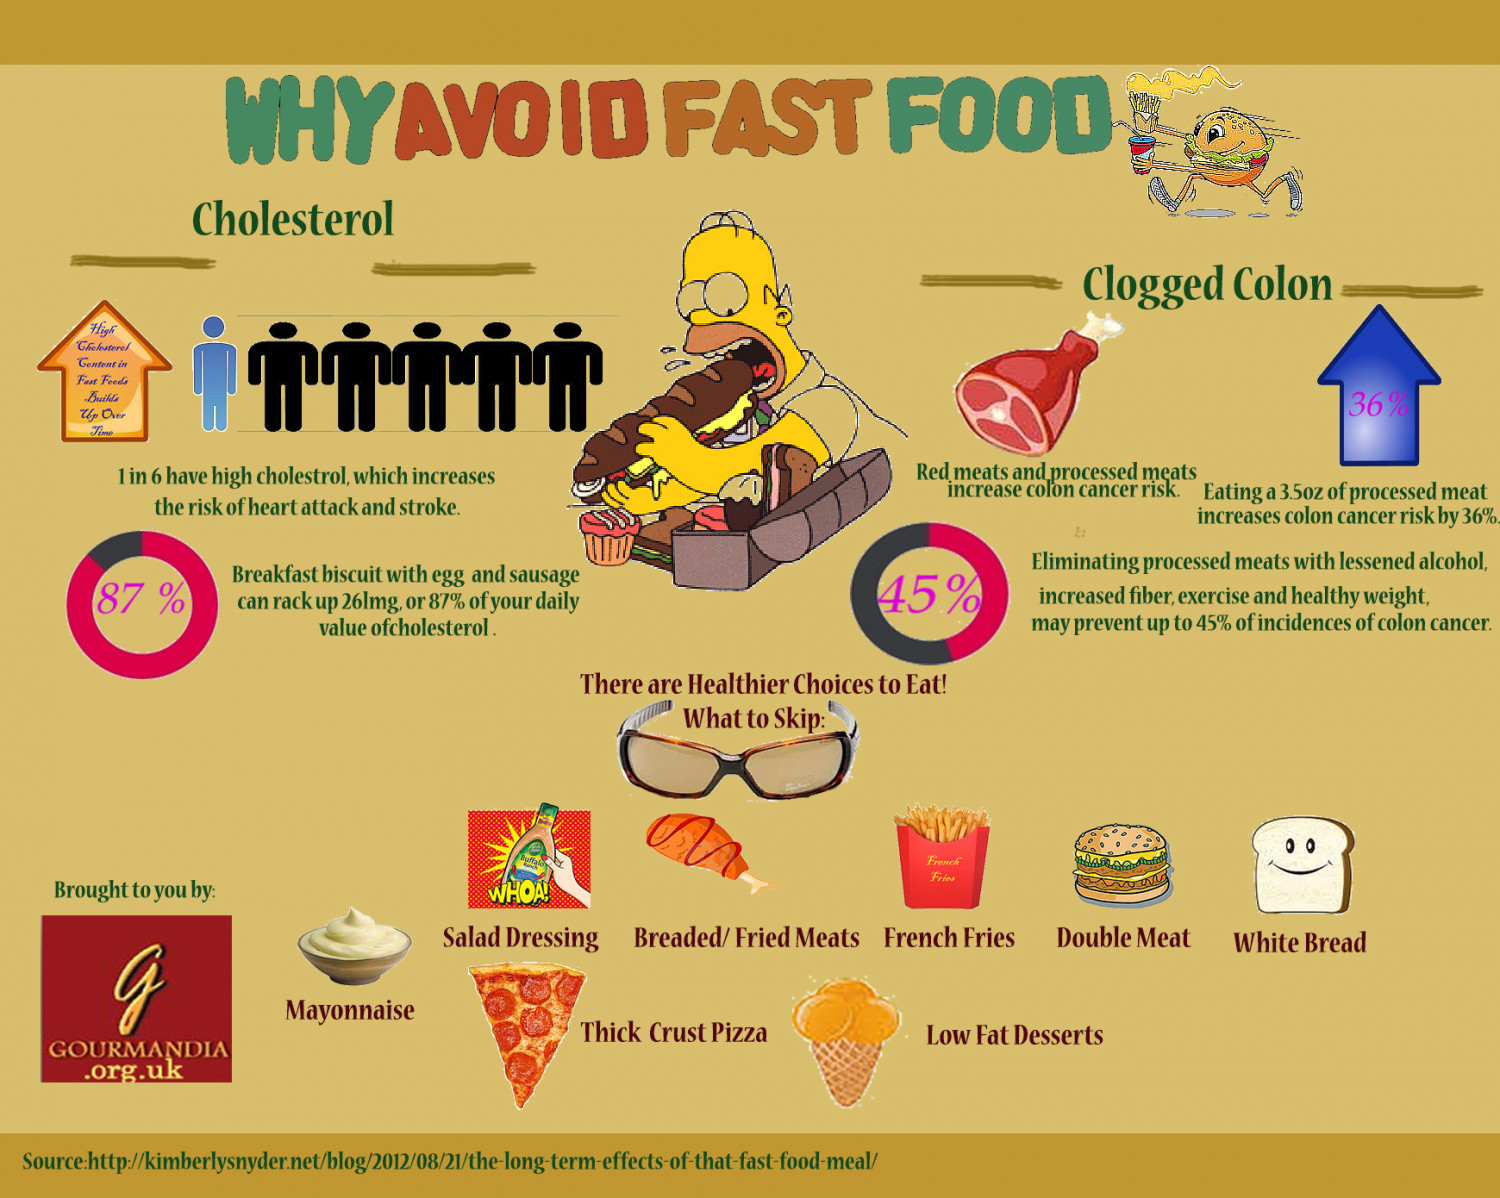 avoid fast food essay Persuasive speech on avoiding junk food this website is a fraud negative effects of junk food health essay though your children may fast food still a.